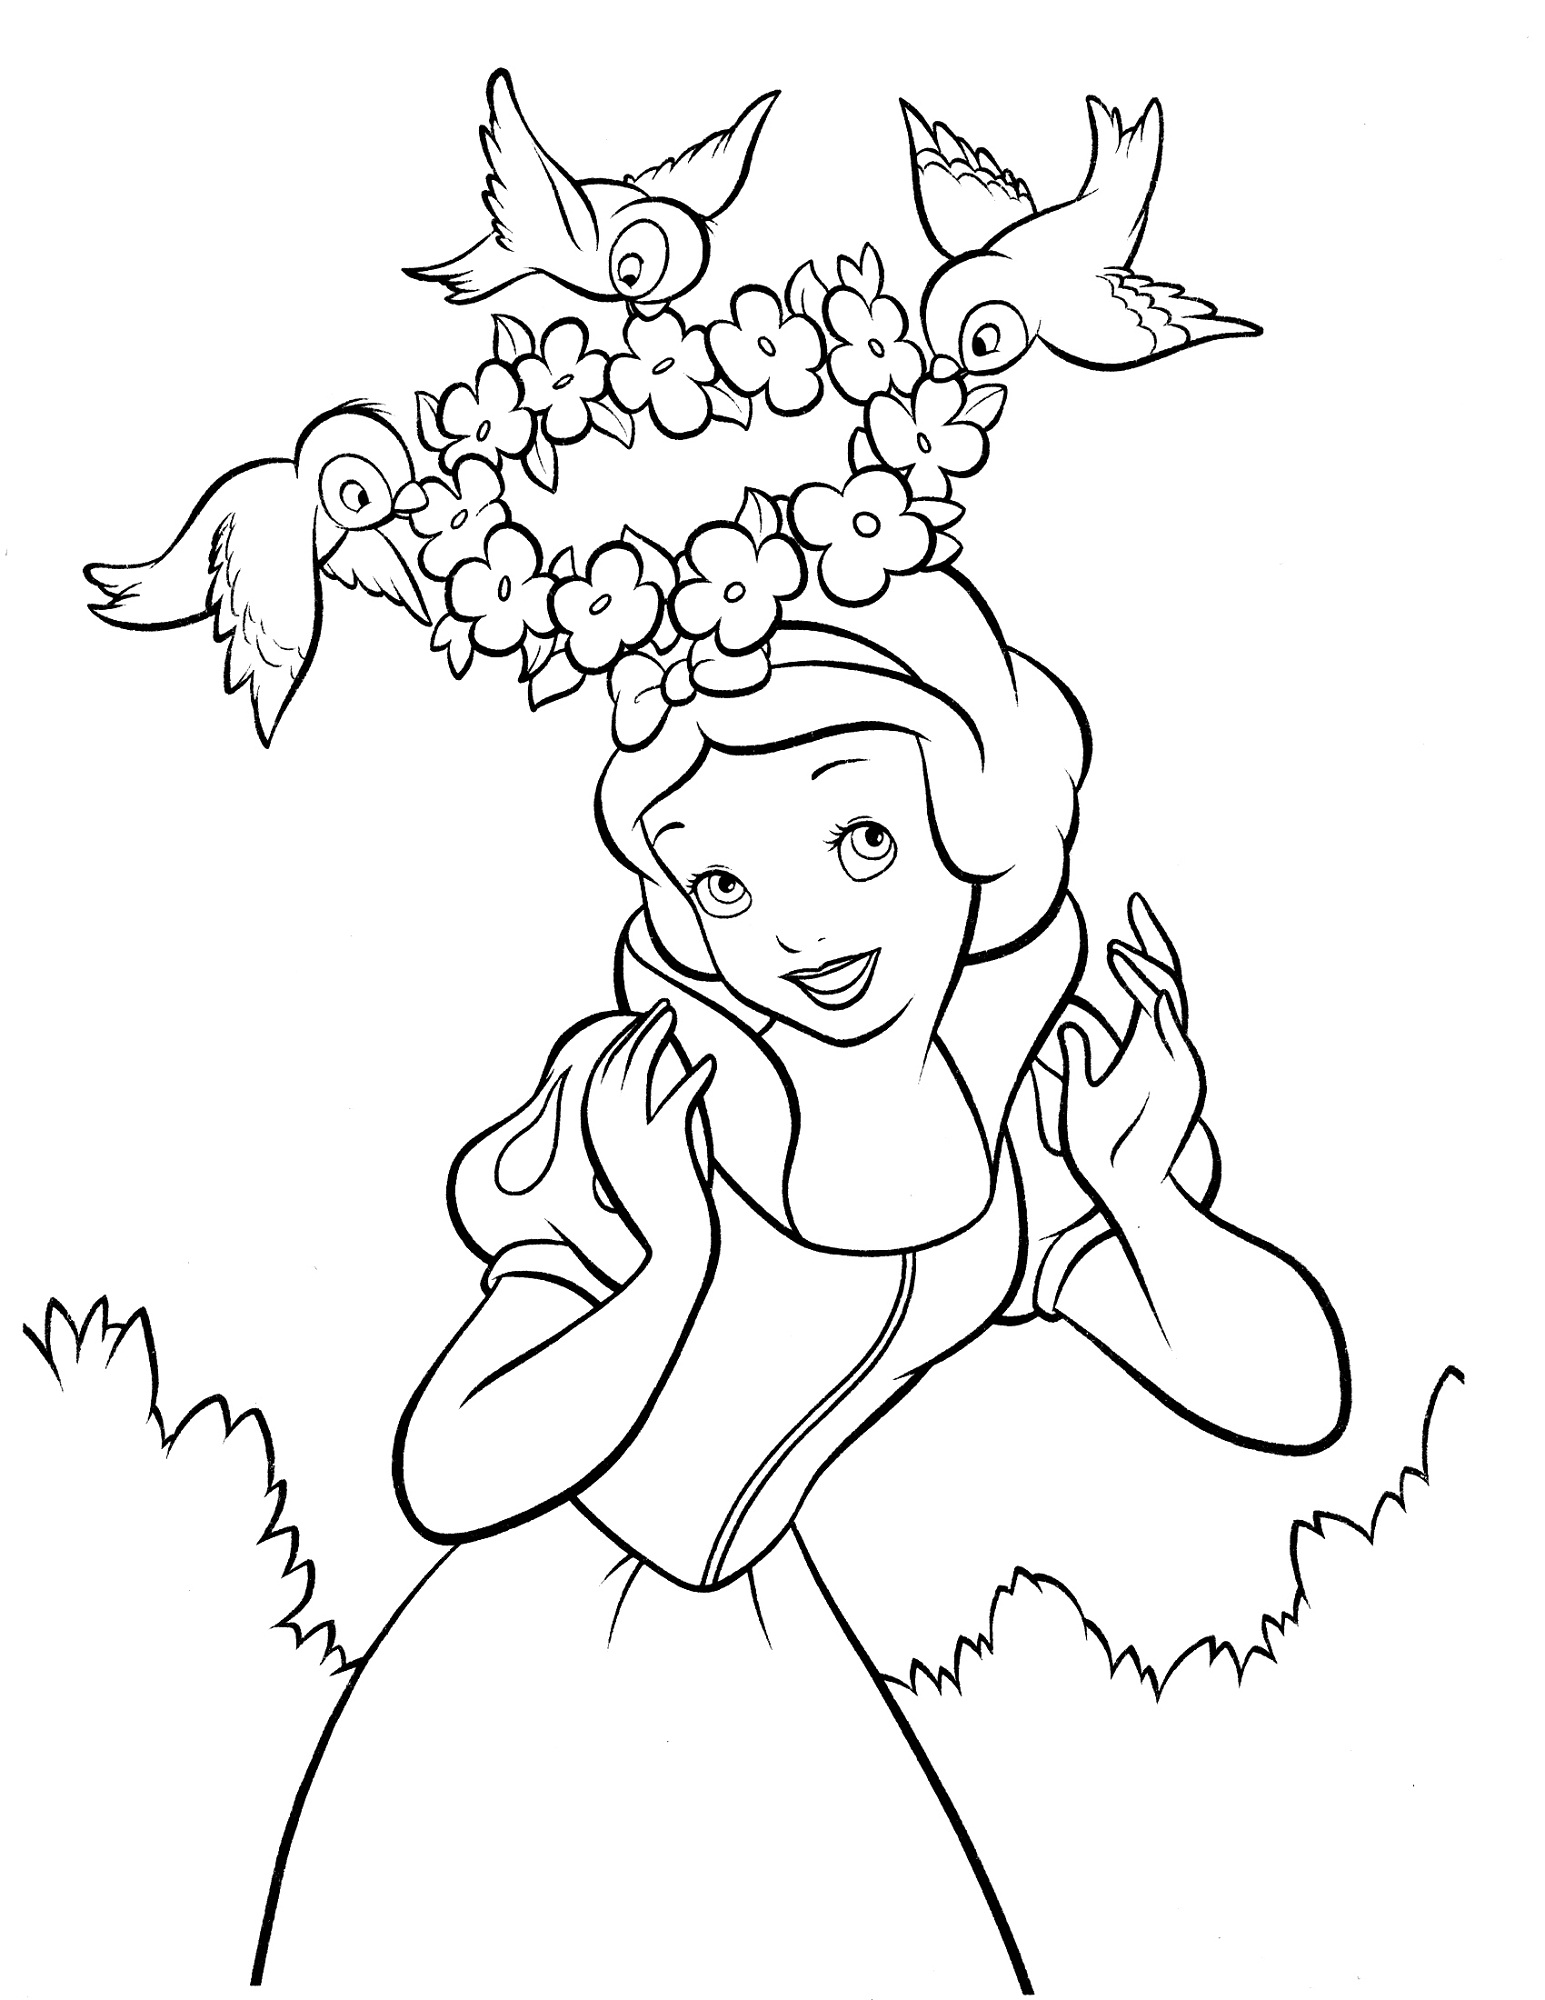 snow white for coloring snow white coloring pages best coloring pages for kids white coloring snow for